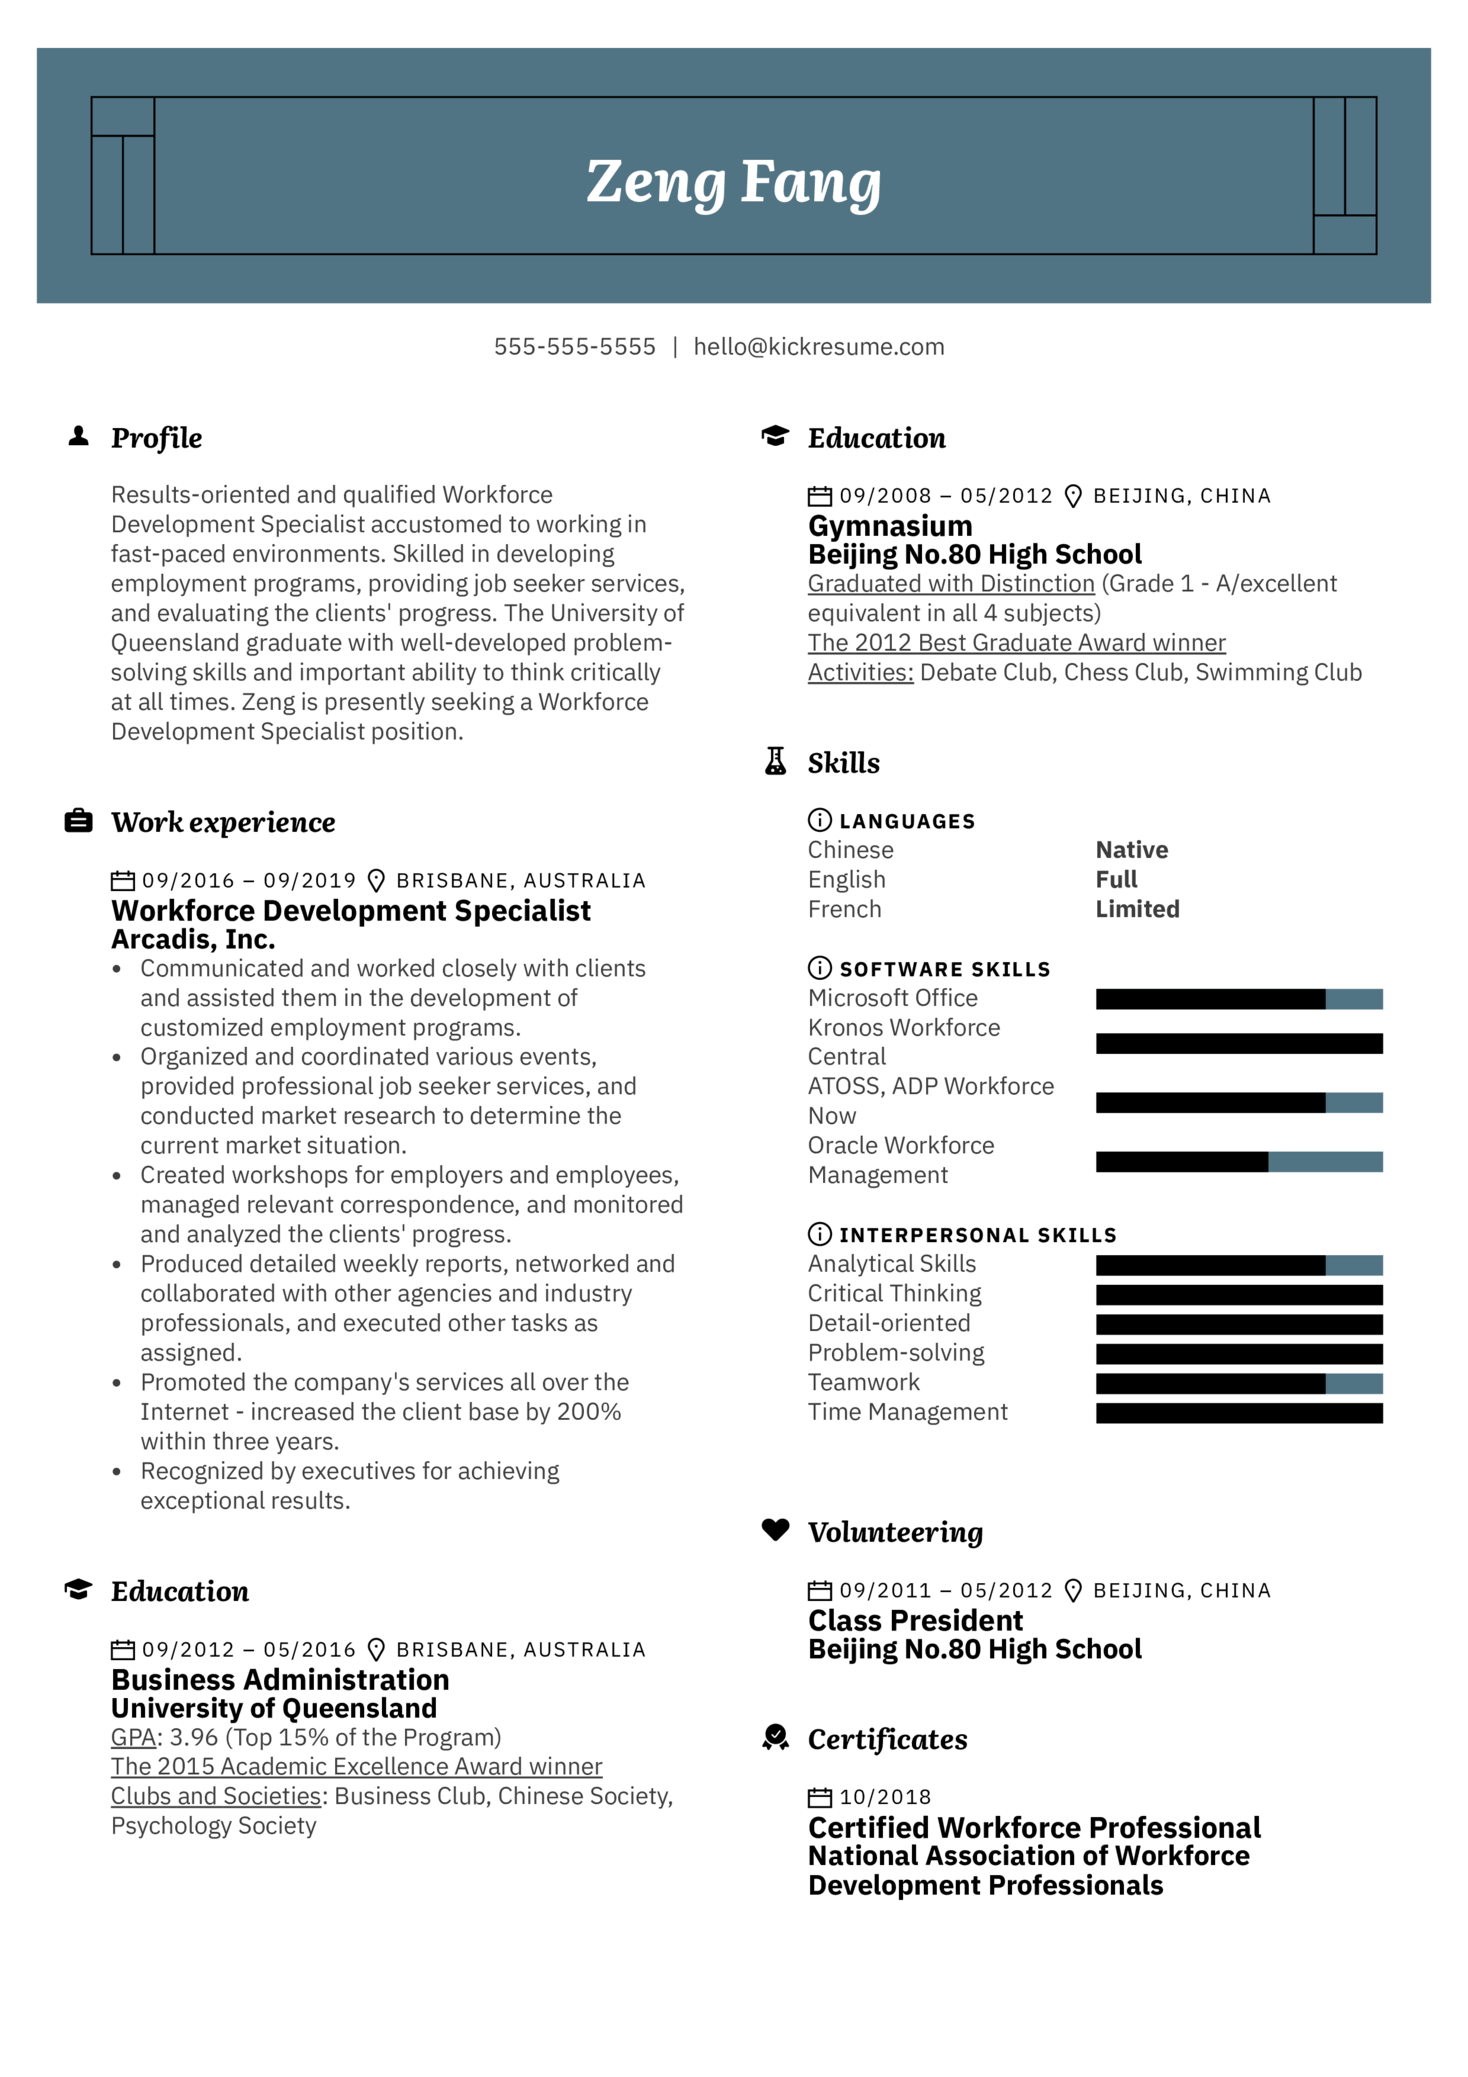 Workforce Development Specialist Resume Example (parte 1)